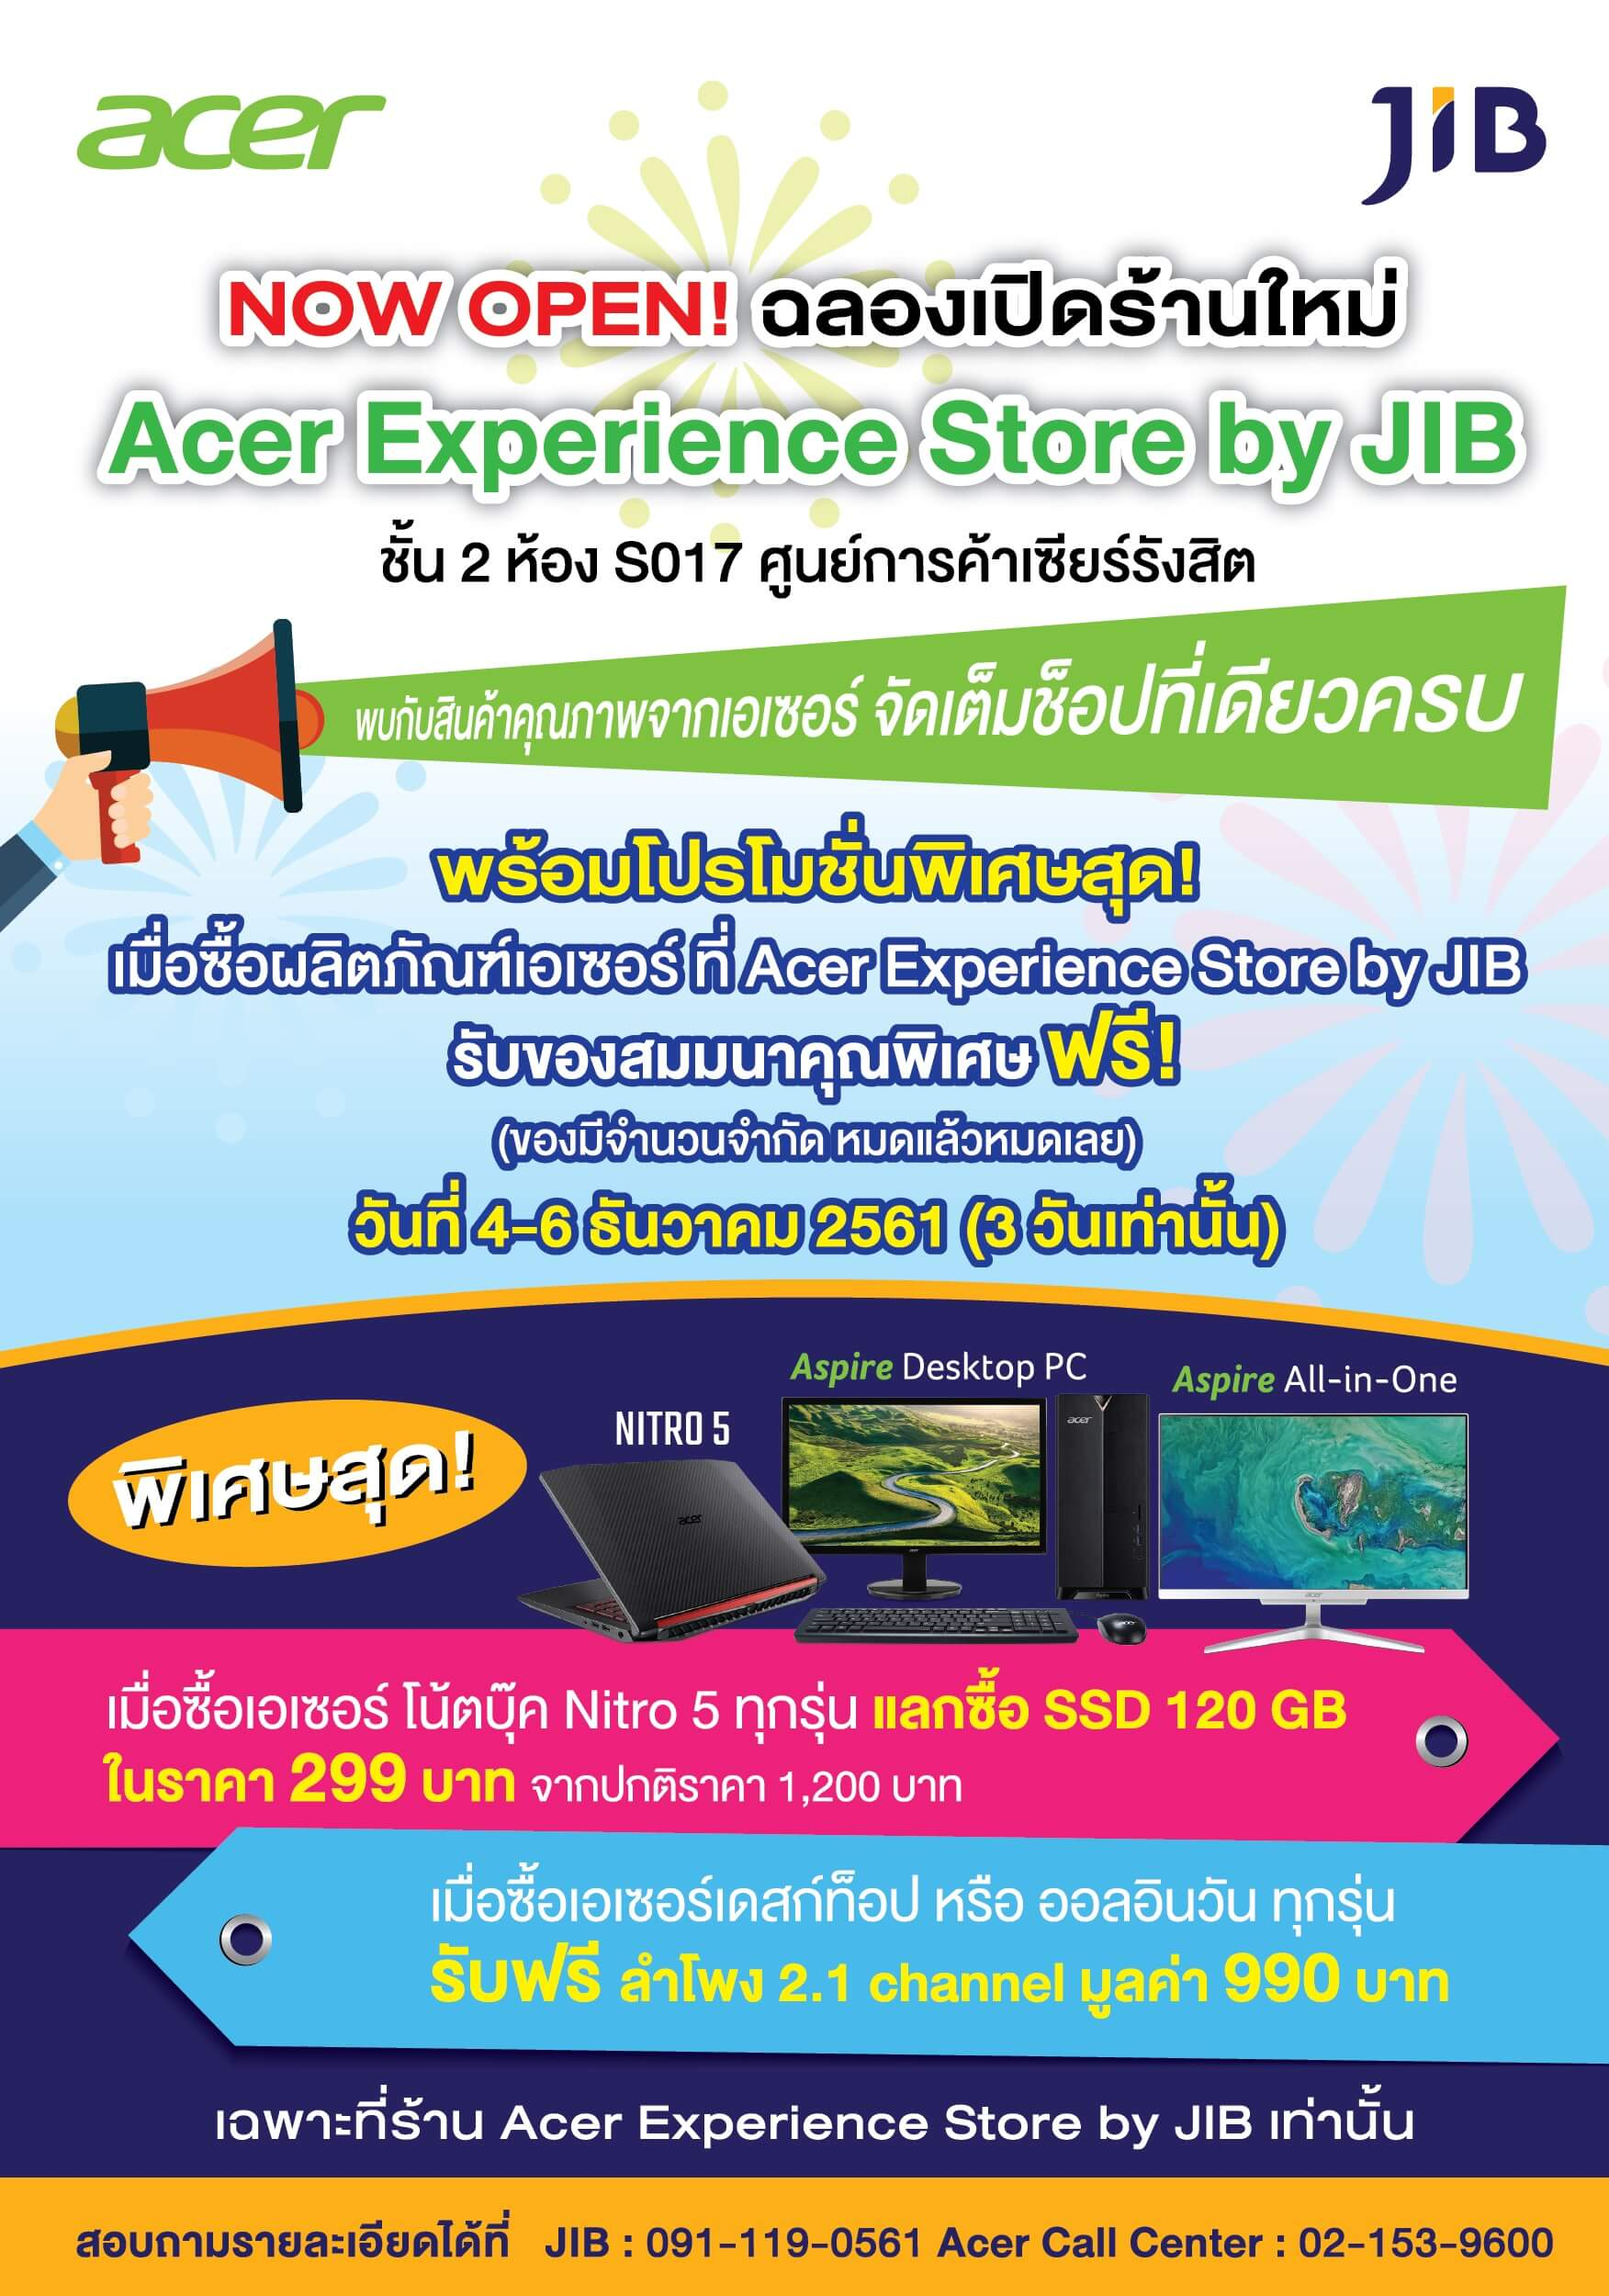 aw Acer Experience Store by JIB A5 ol